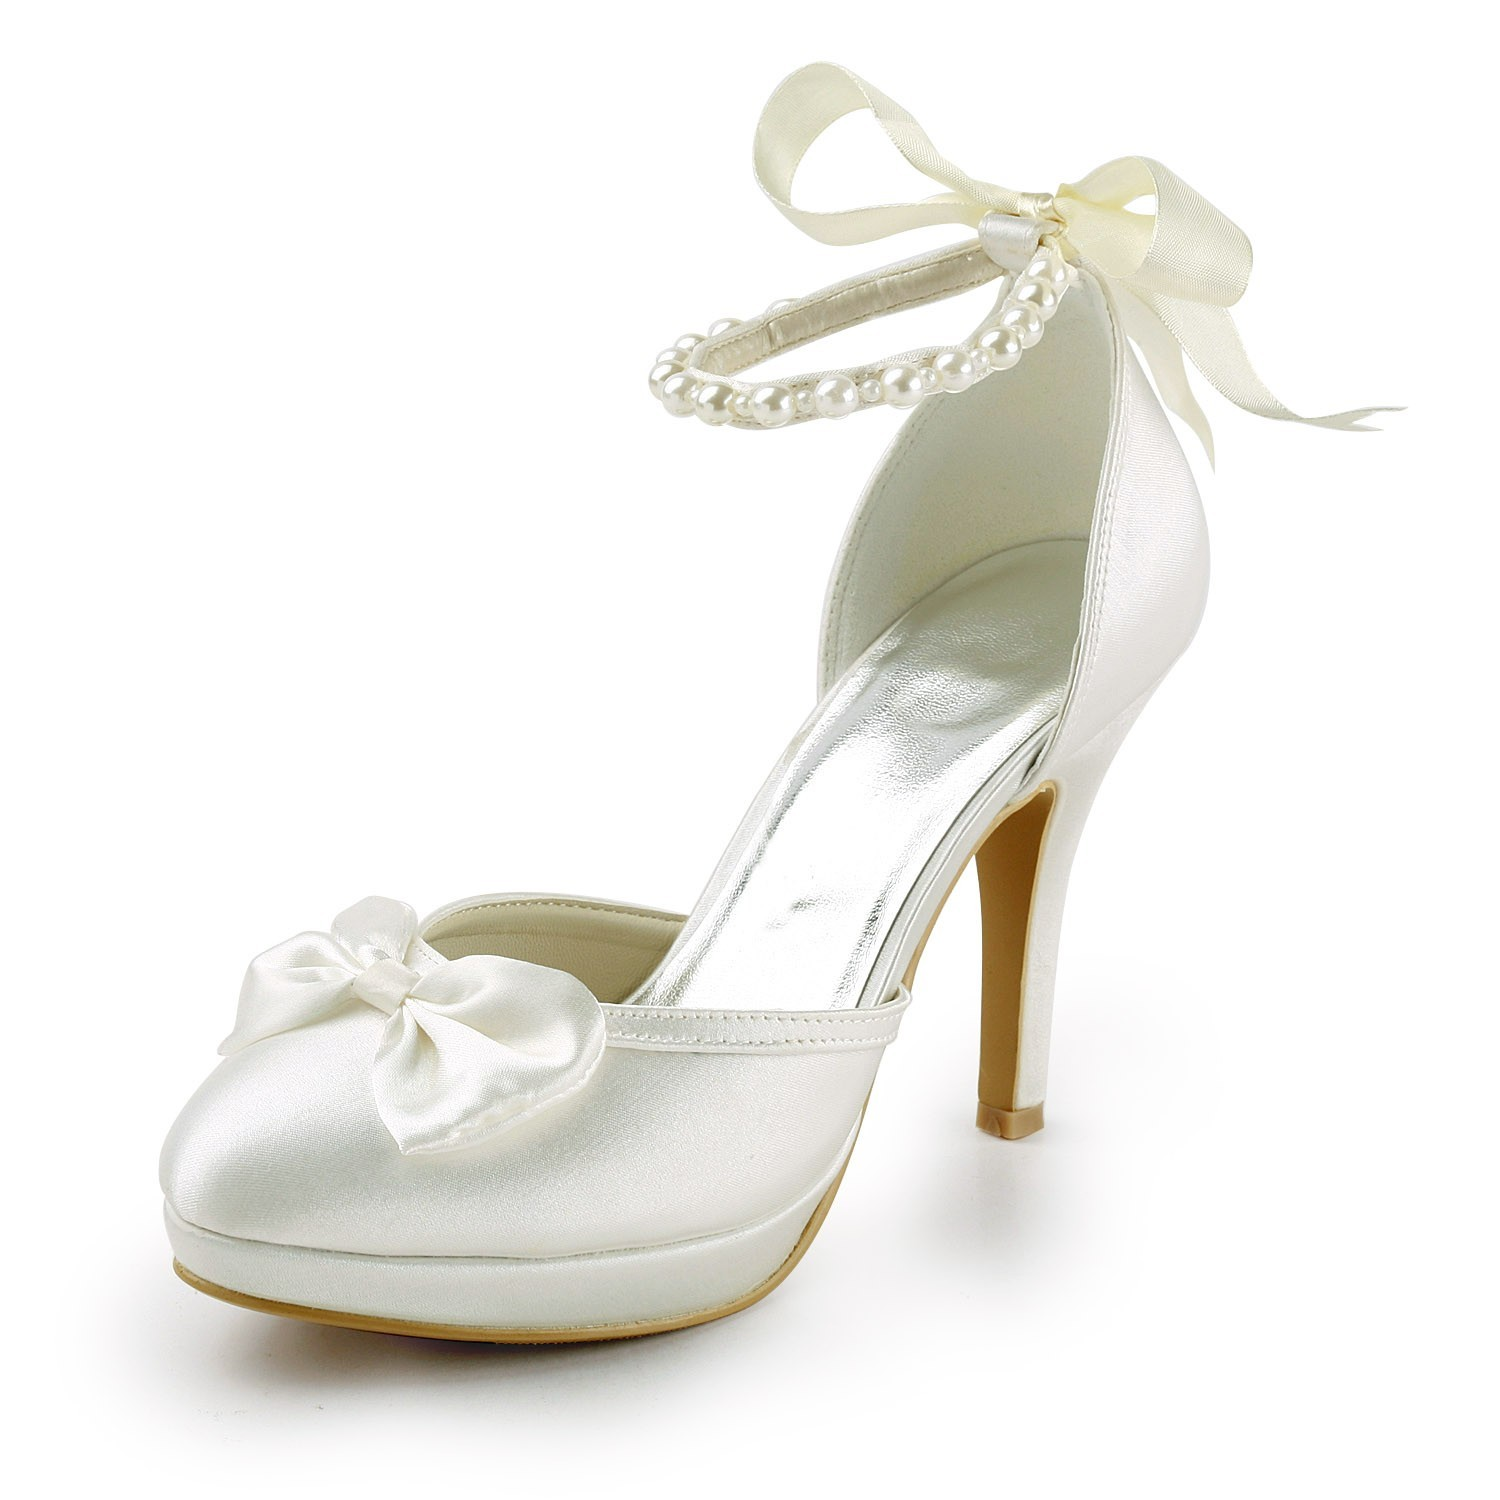 a7033d53bb4804 Women s Satin Stiletto Heel Closed Toe Platform Pumps White Wedding Shoes  With Bowknot